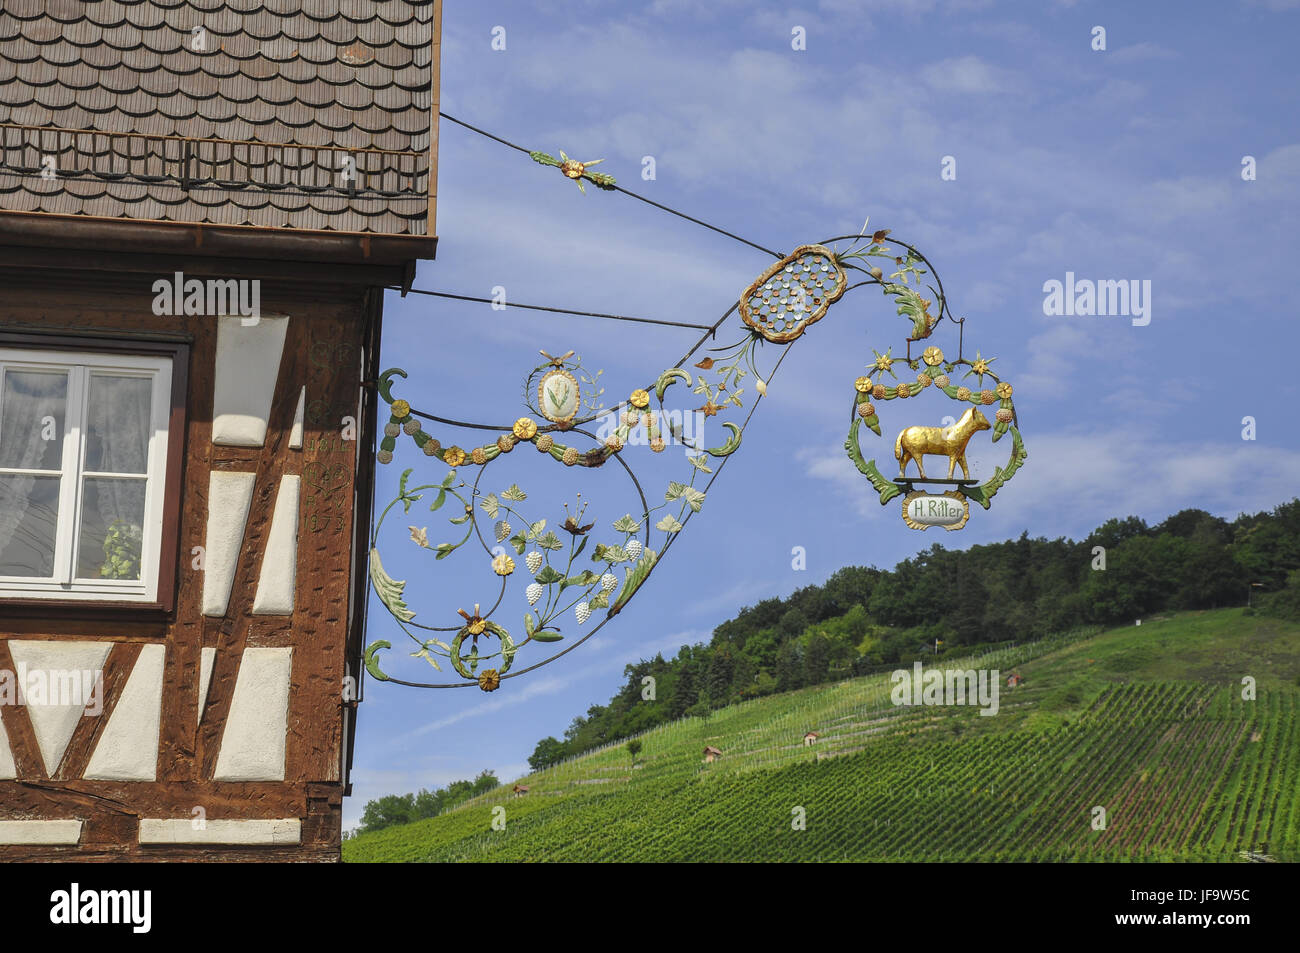 Inn sign in the Rems Valley, Germany Stock Photo